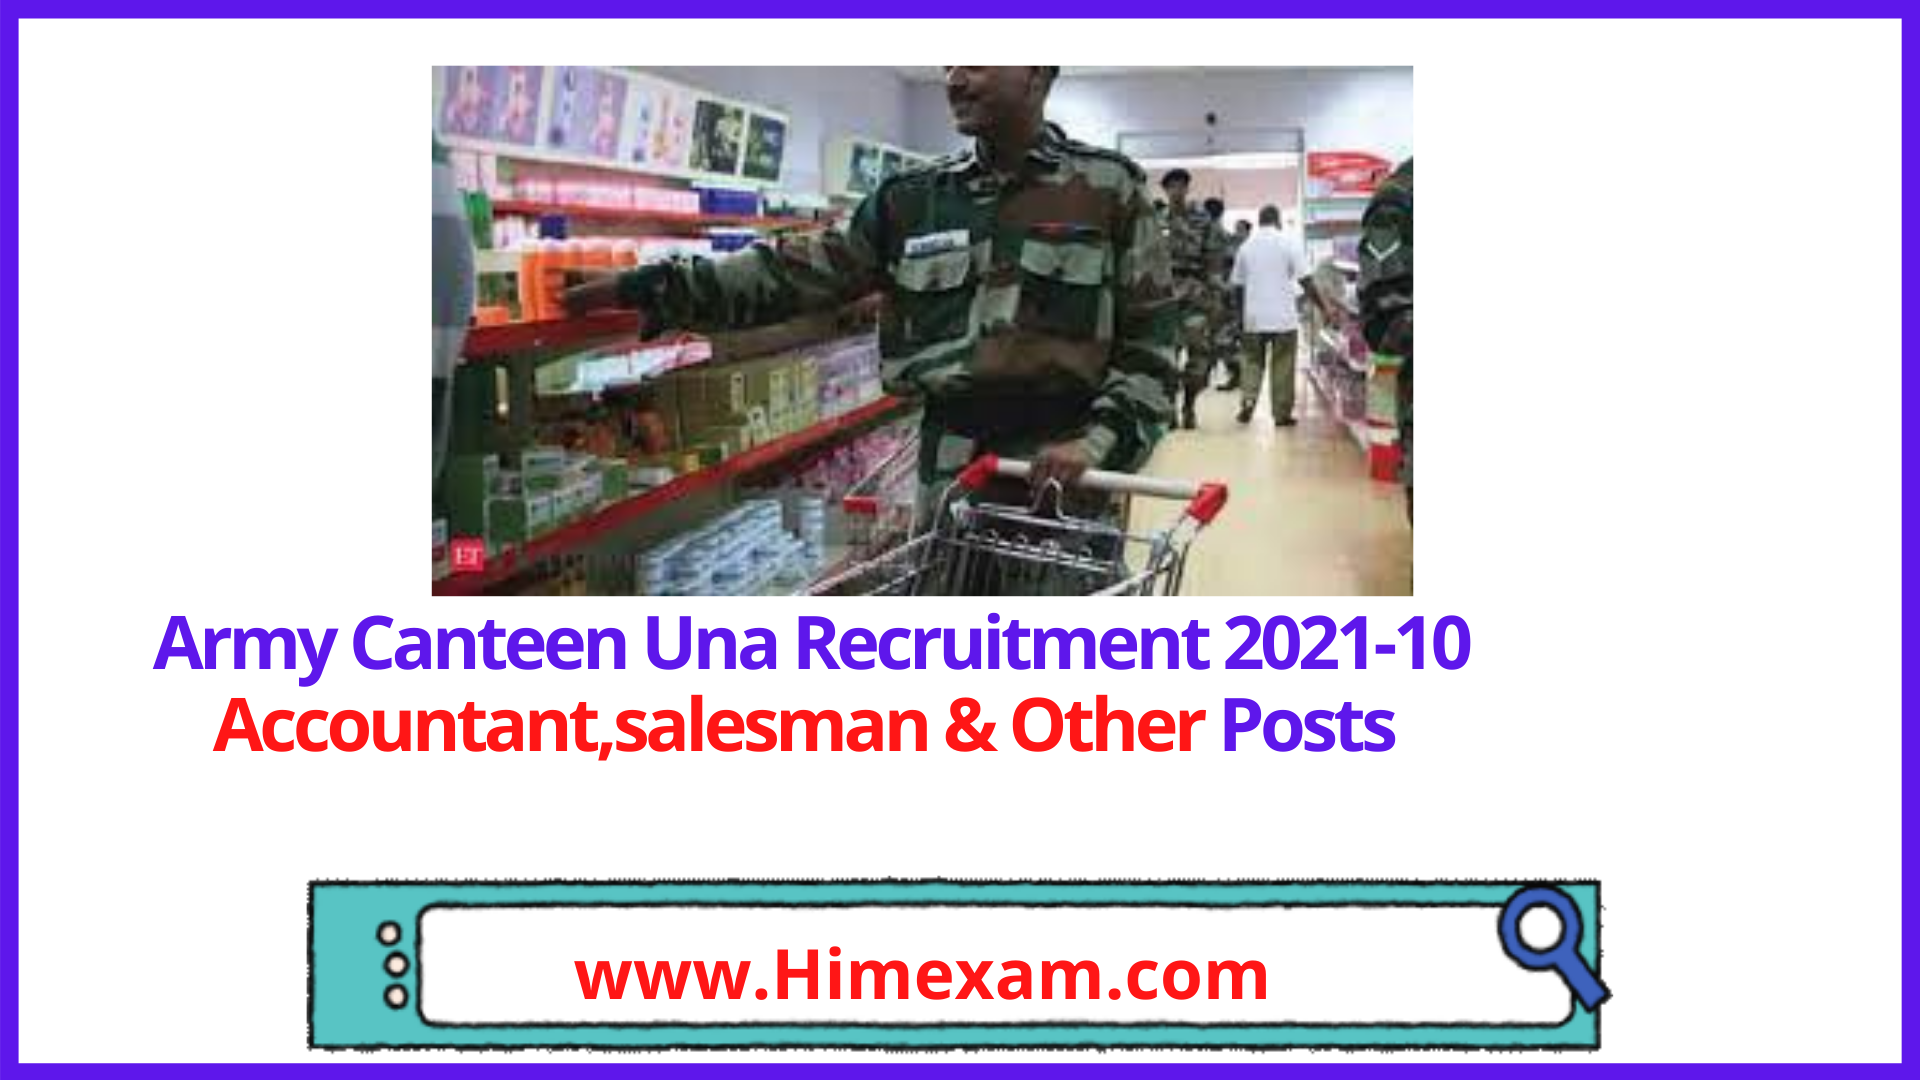 Army Canteen Una Recruitment 2021-10 Accountant,salesman & Other Posts